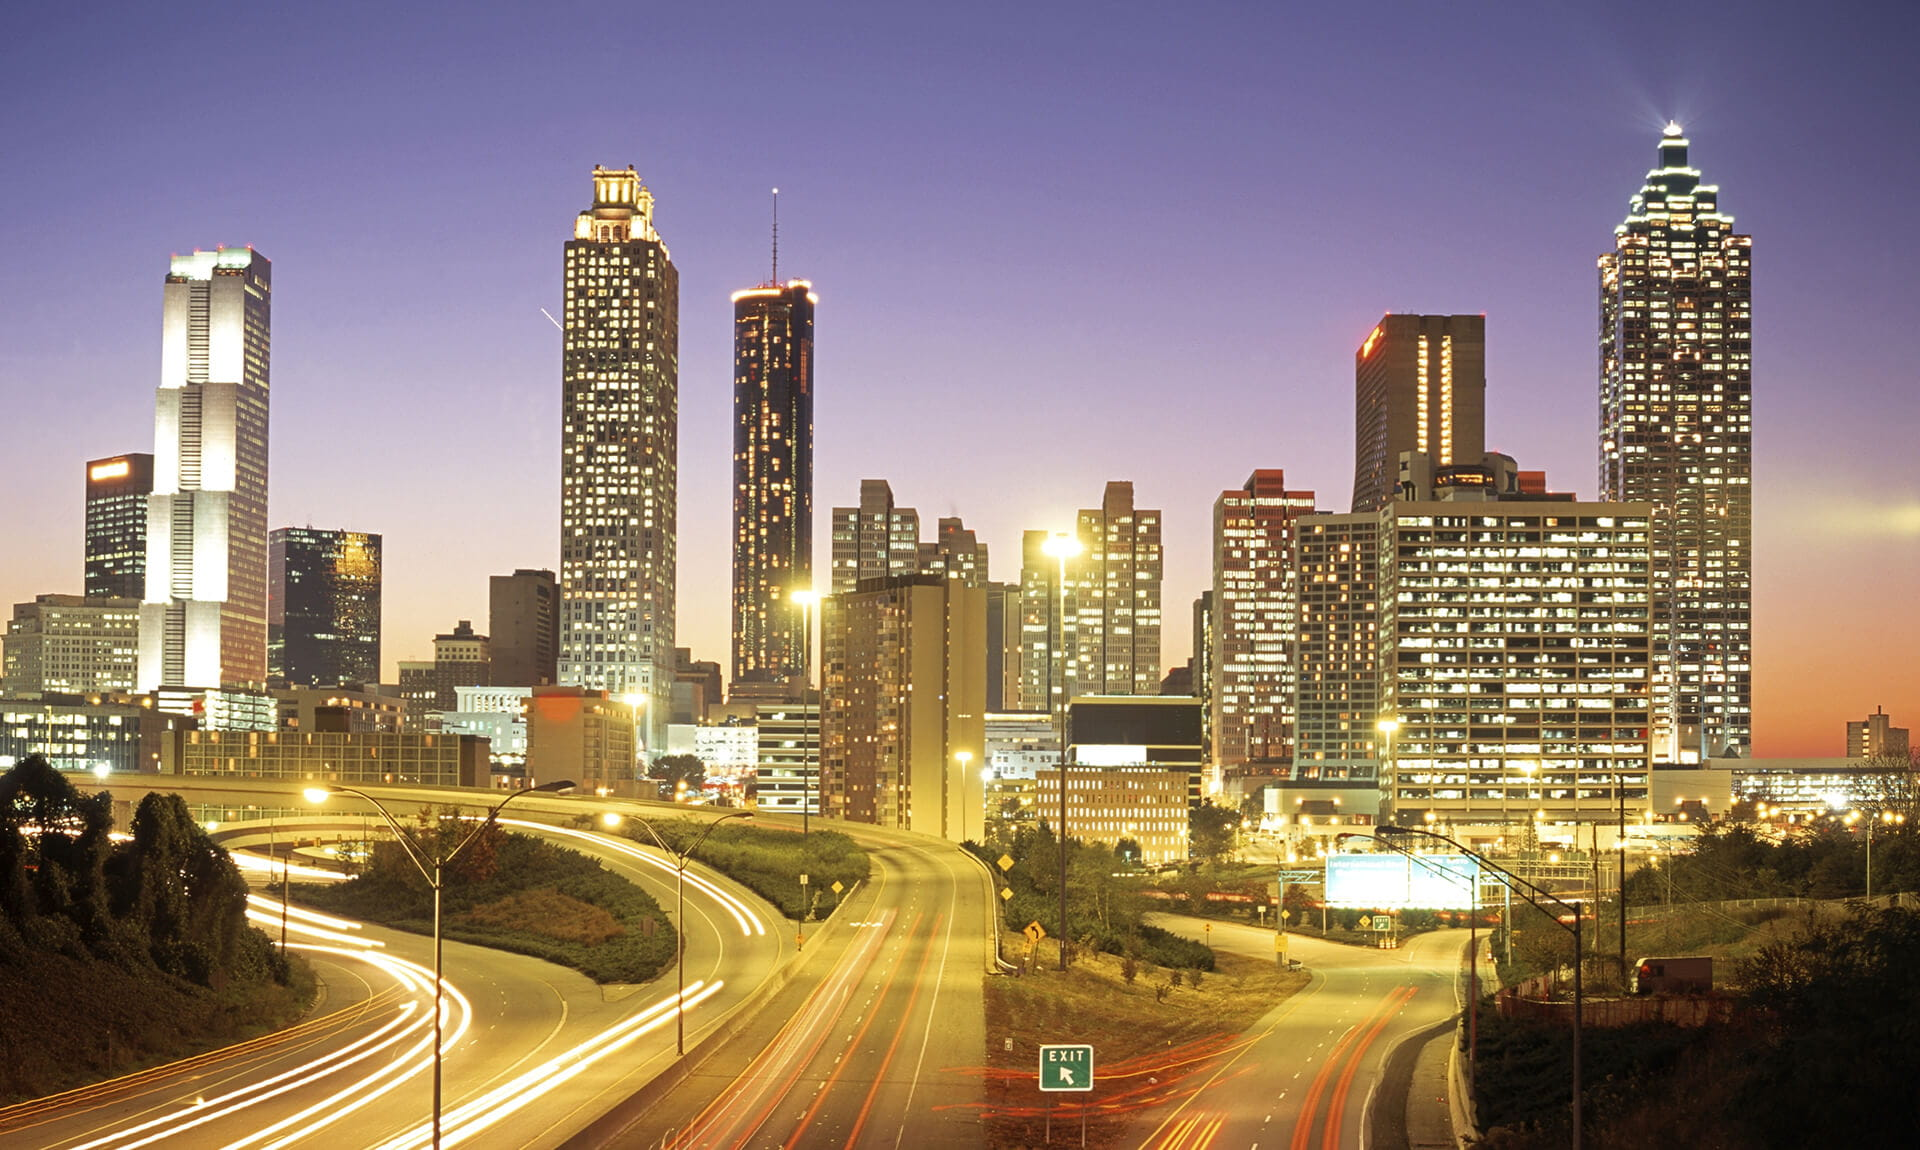 Atlanta Interstate Skyline at Night